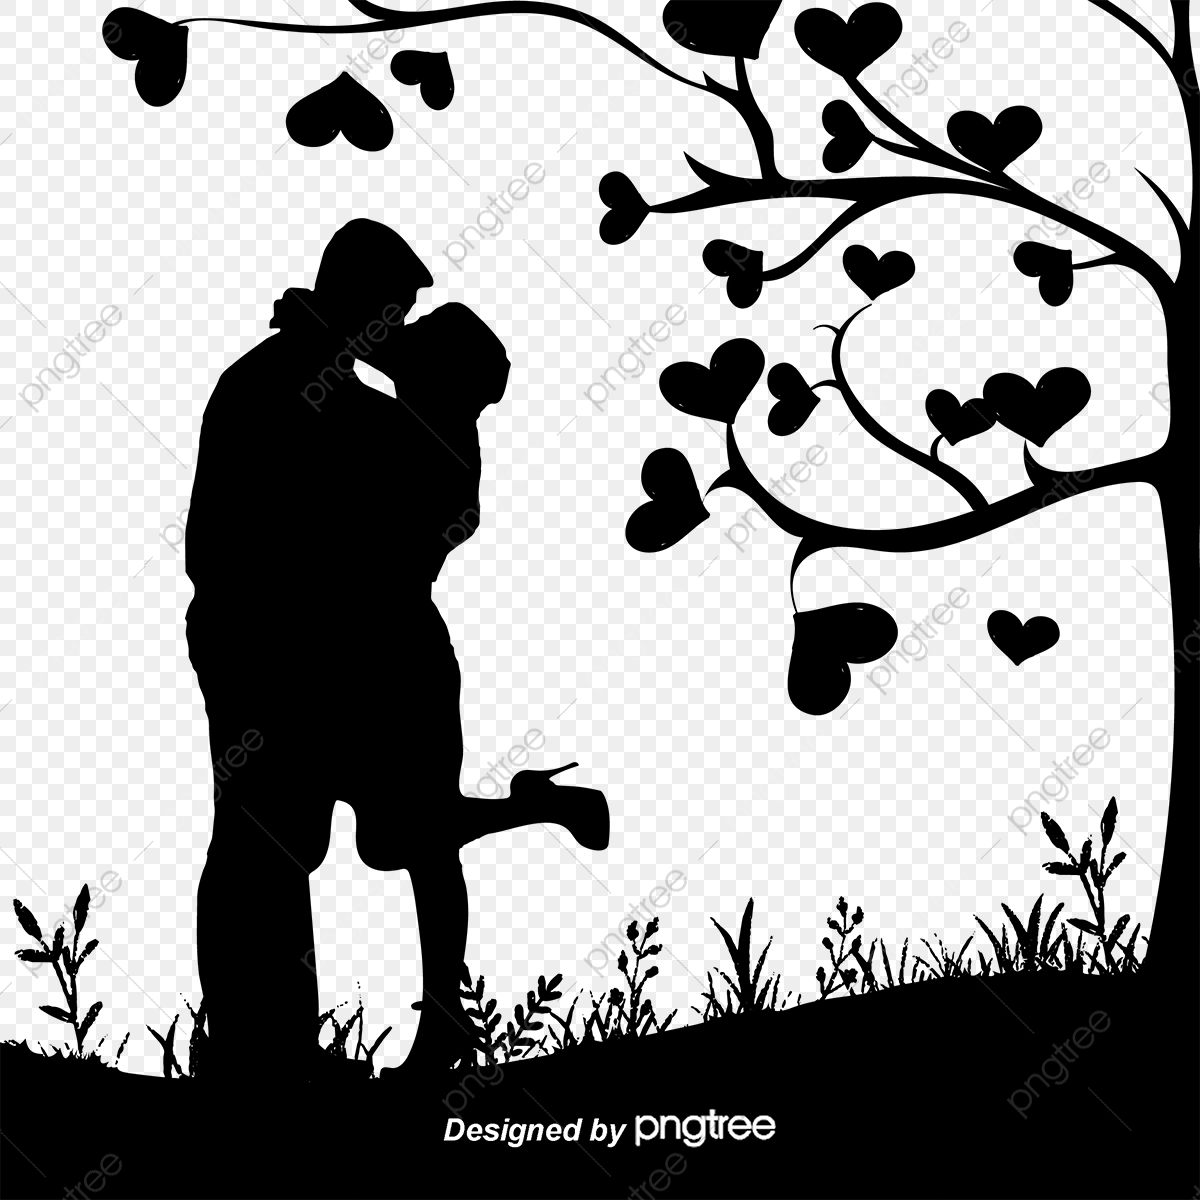 Couple silhouette black and white sketch love png and